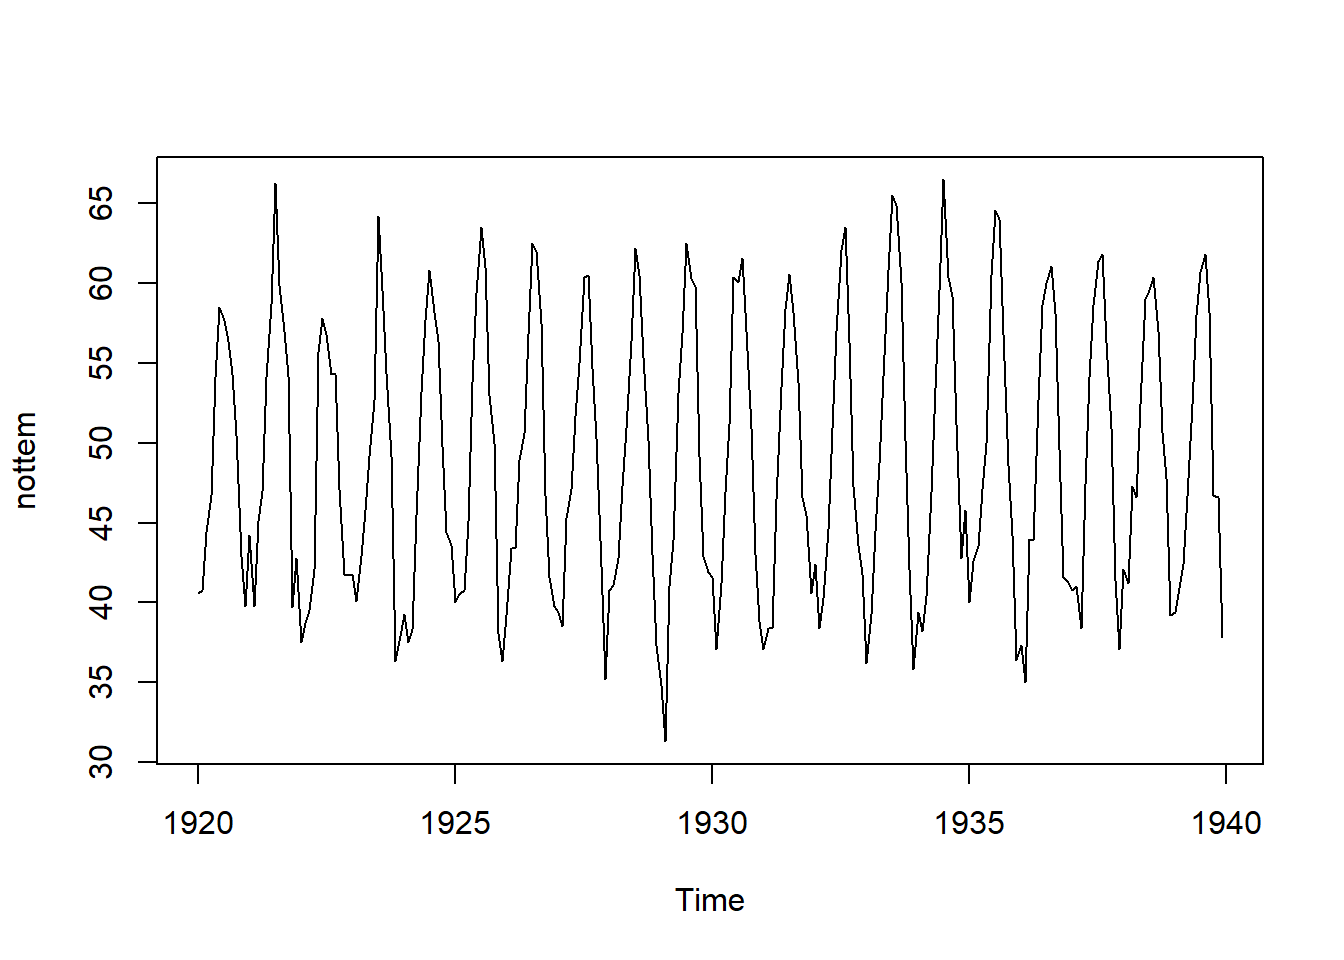 Chapter 3 Time Series Data Pre-Processing and